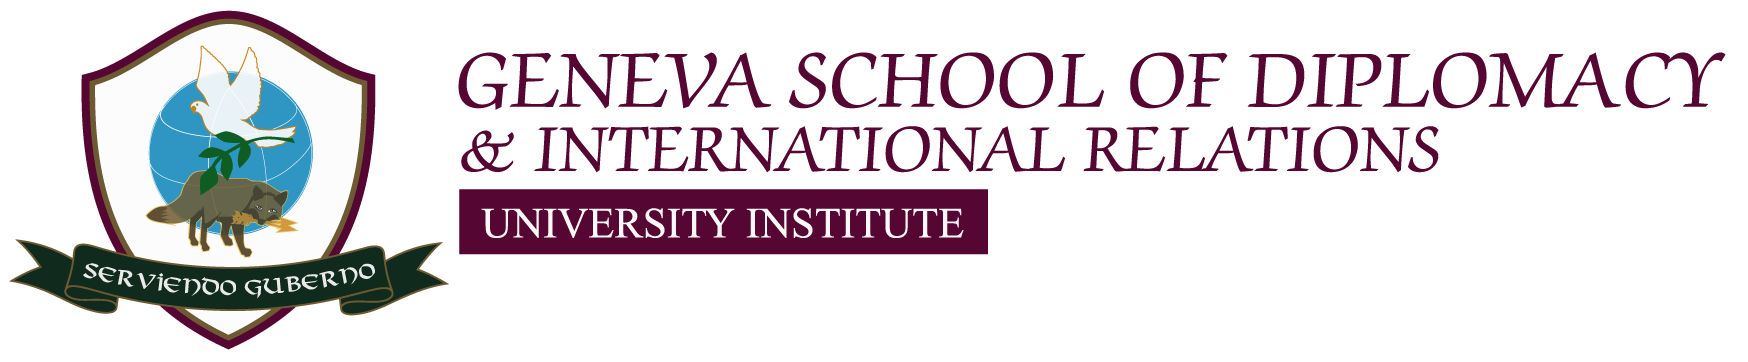 logo for Geneva School of Diplomacy and International Relations